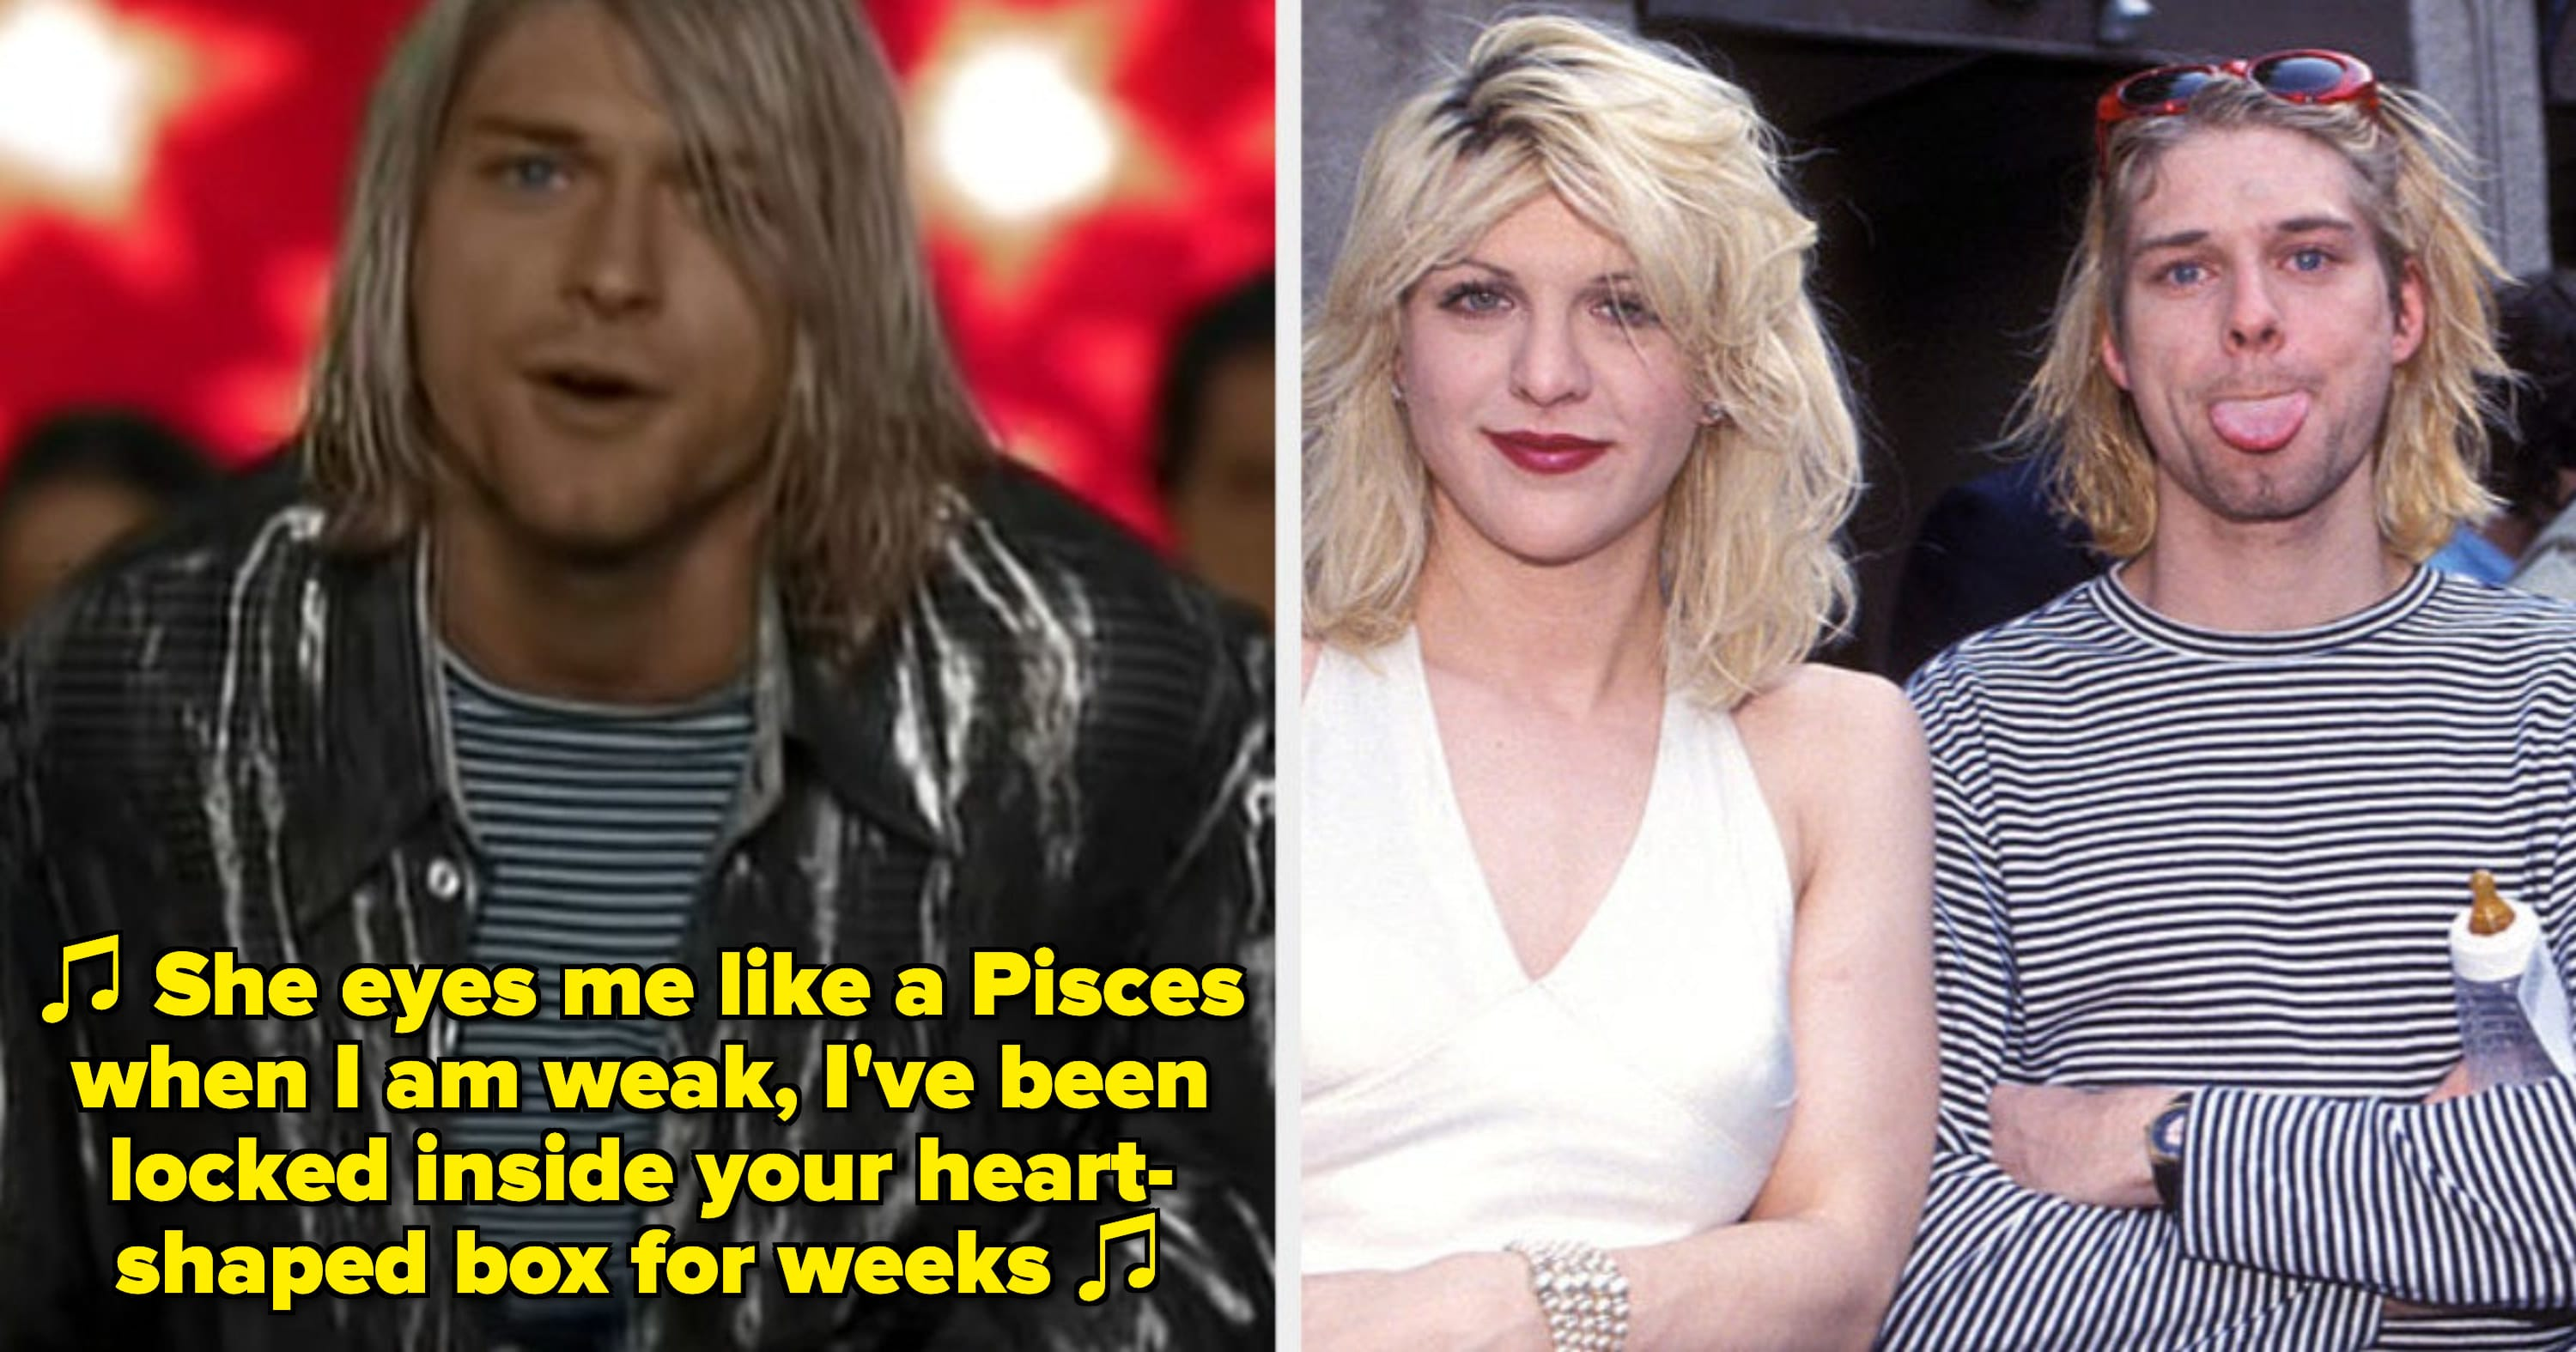 """Kurt Cobain in Nirvana's """"Heart-Shaped Box"""" music video; Courtney Love and Kurt Cobain at the MTV Awards in the early '90s"""